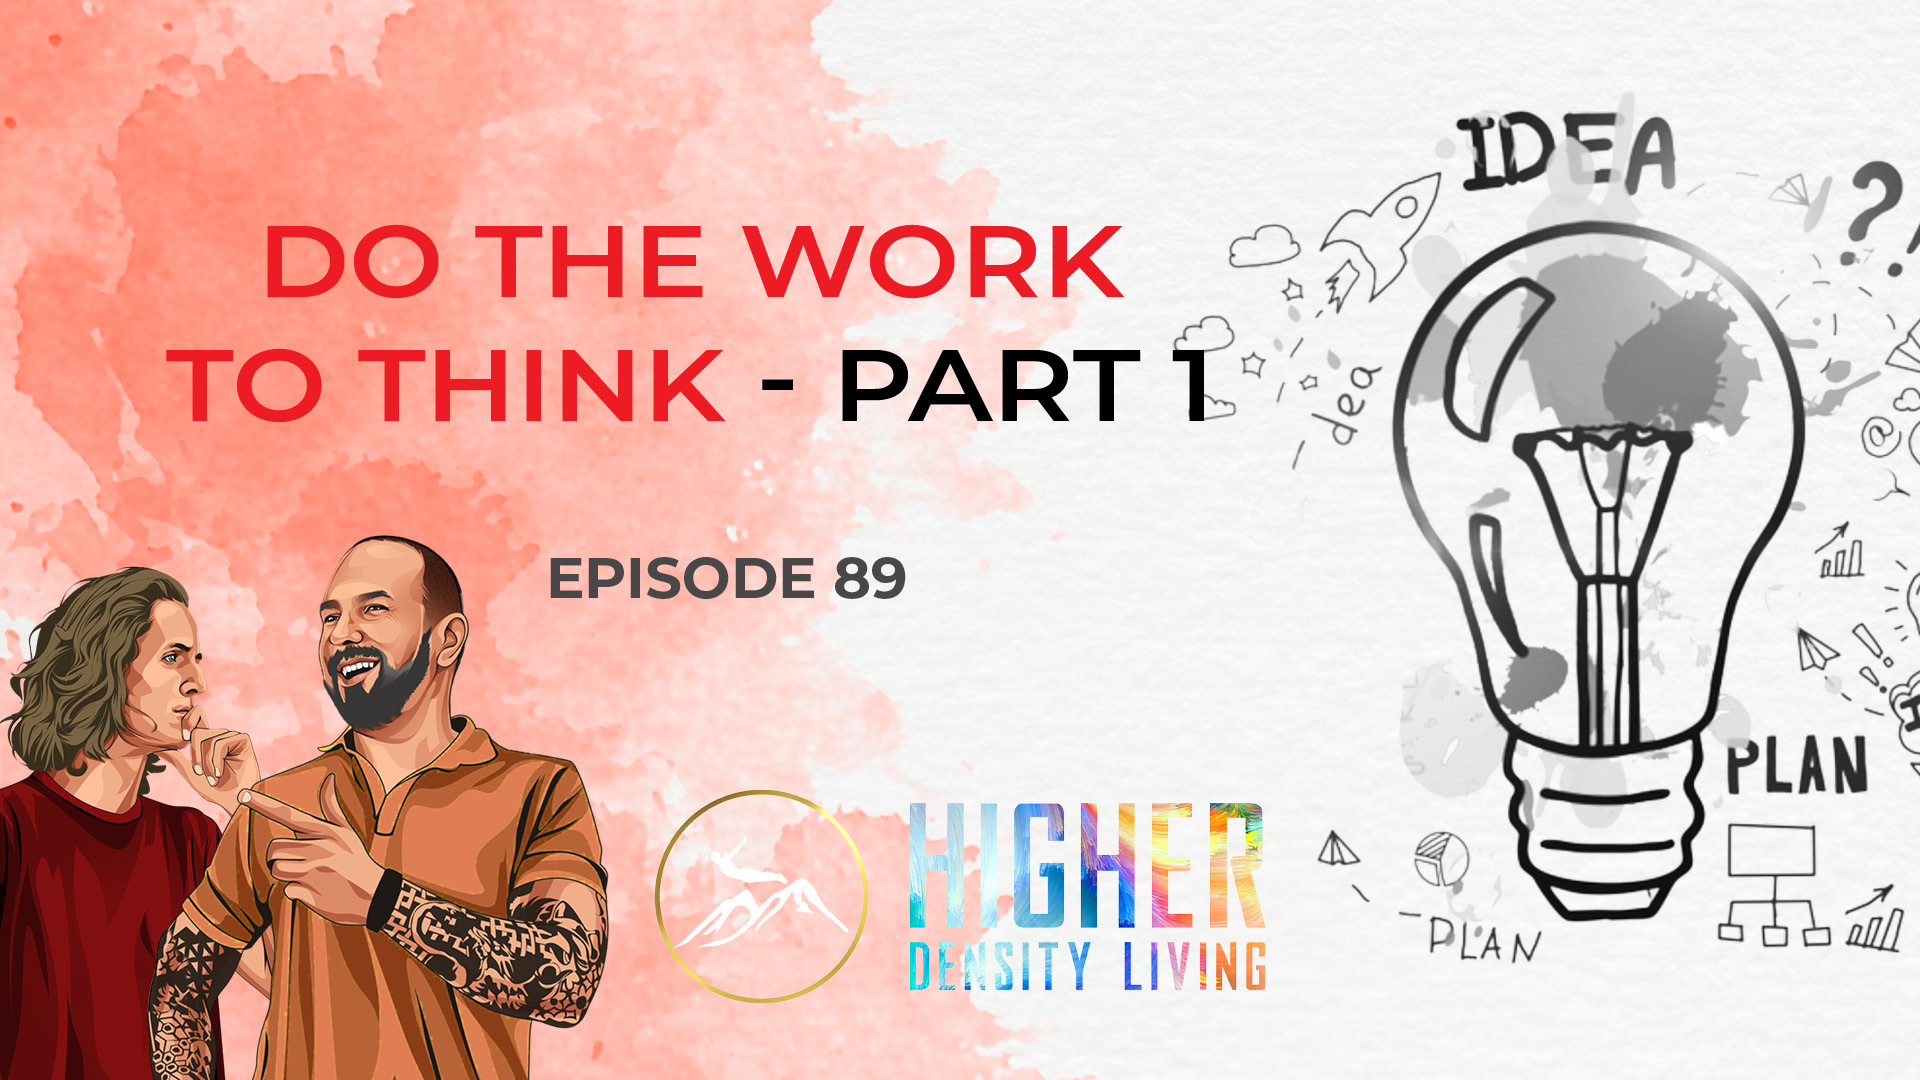 Do the Work to Think - Part 1